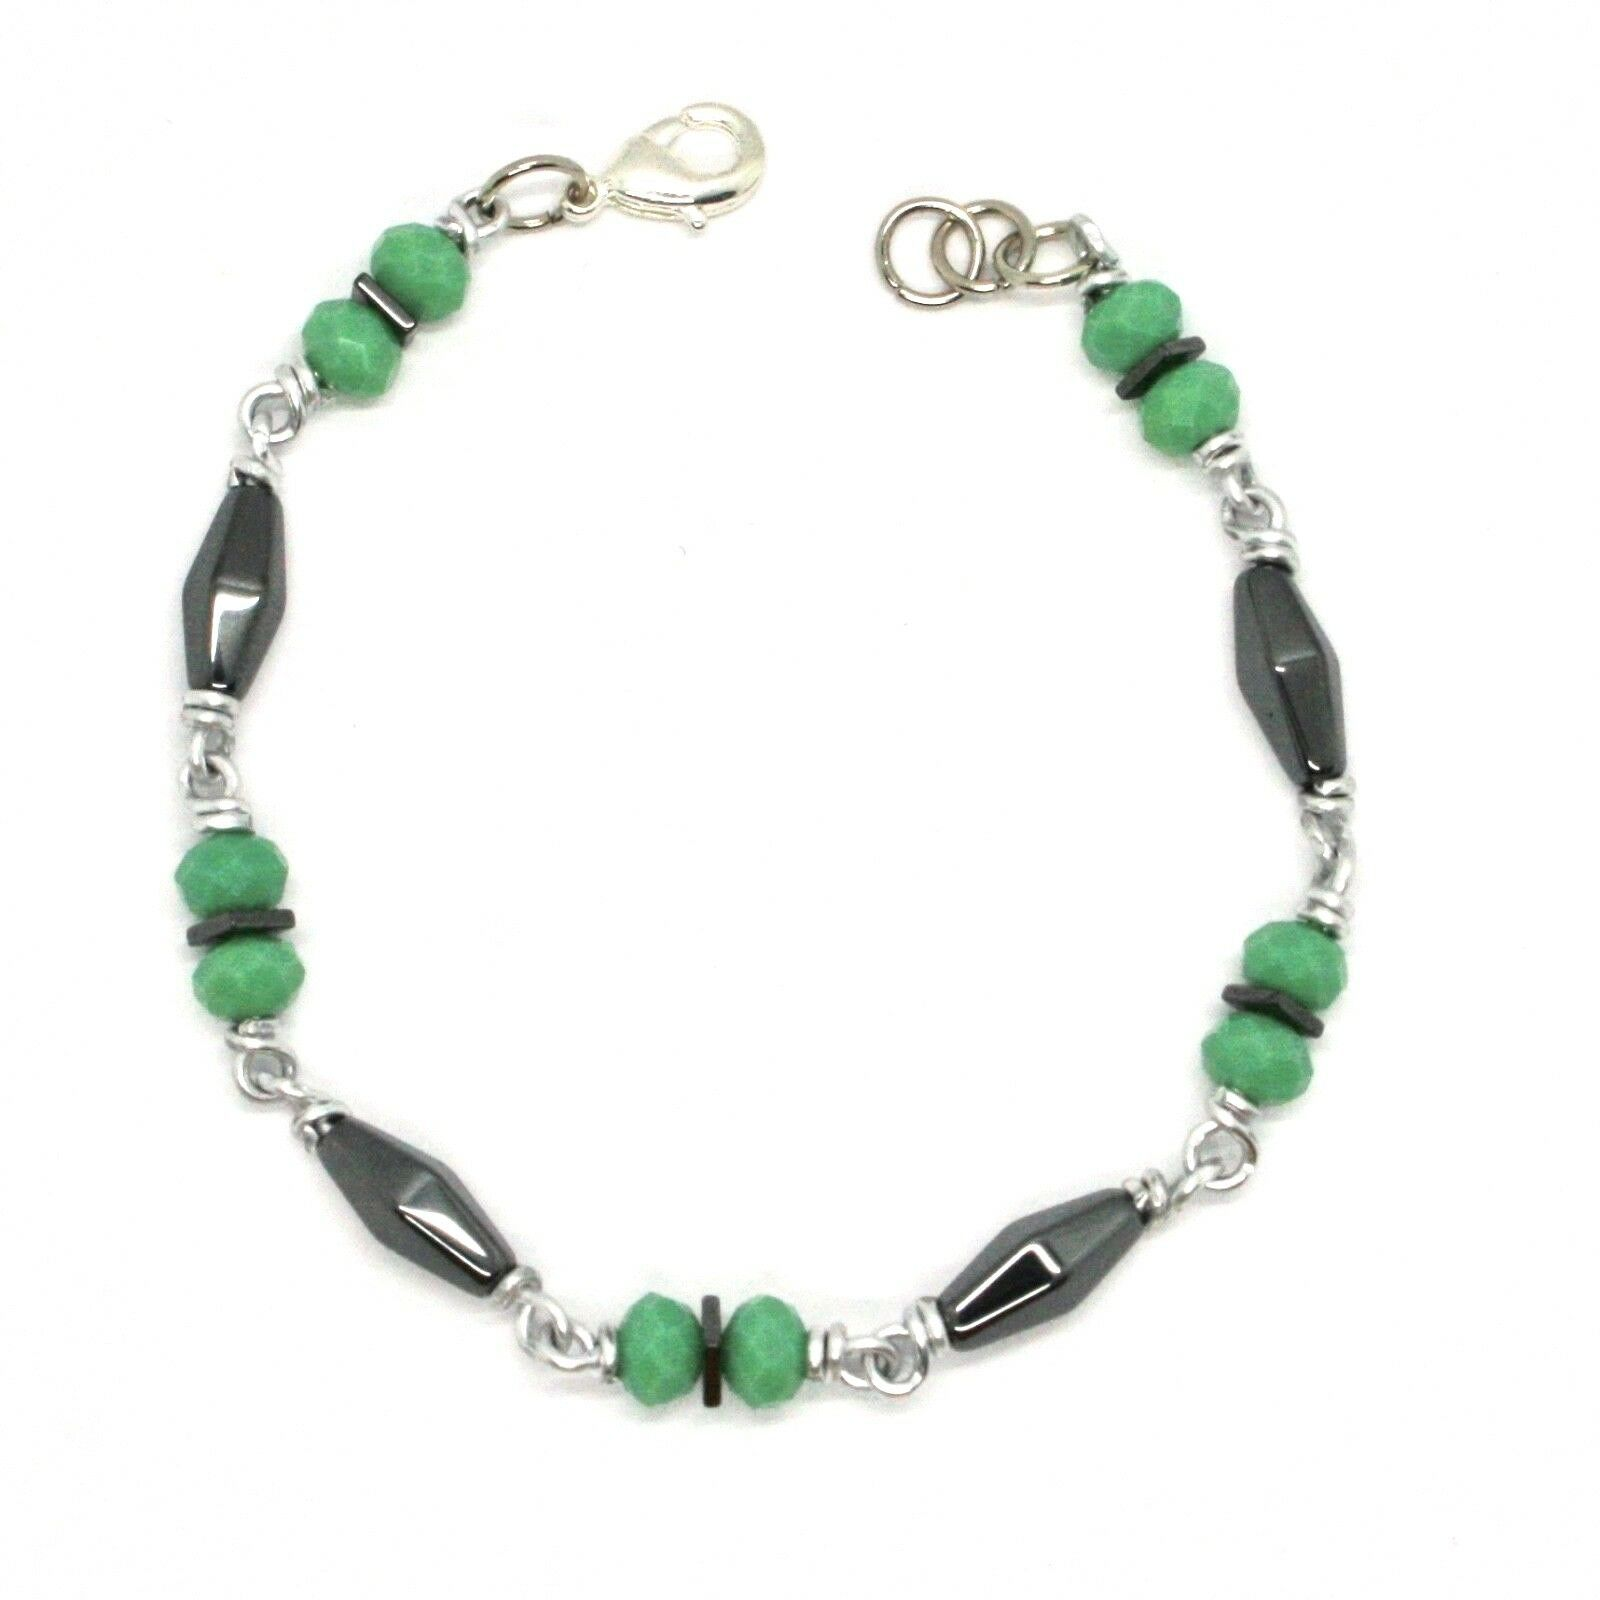 Bracelet the Aluminium Long 19 Inch with Hematite and Crystal Green